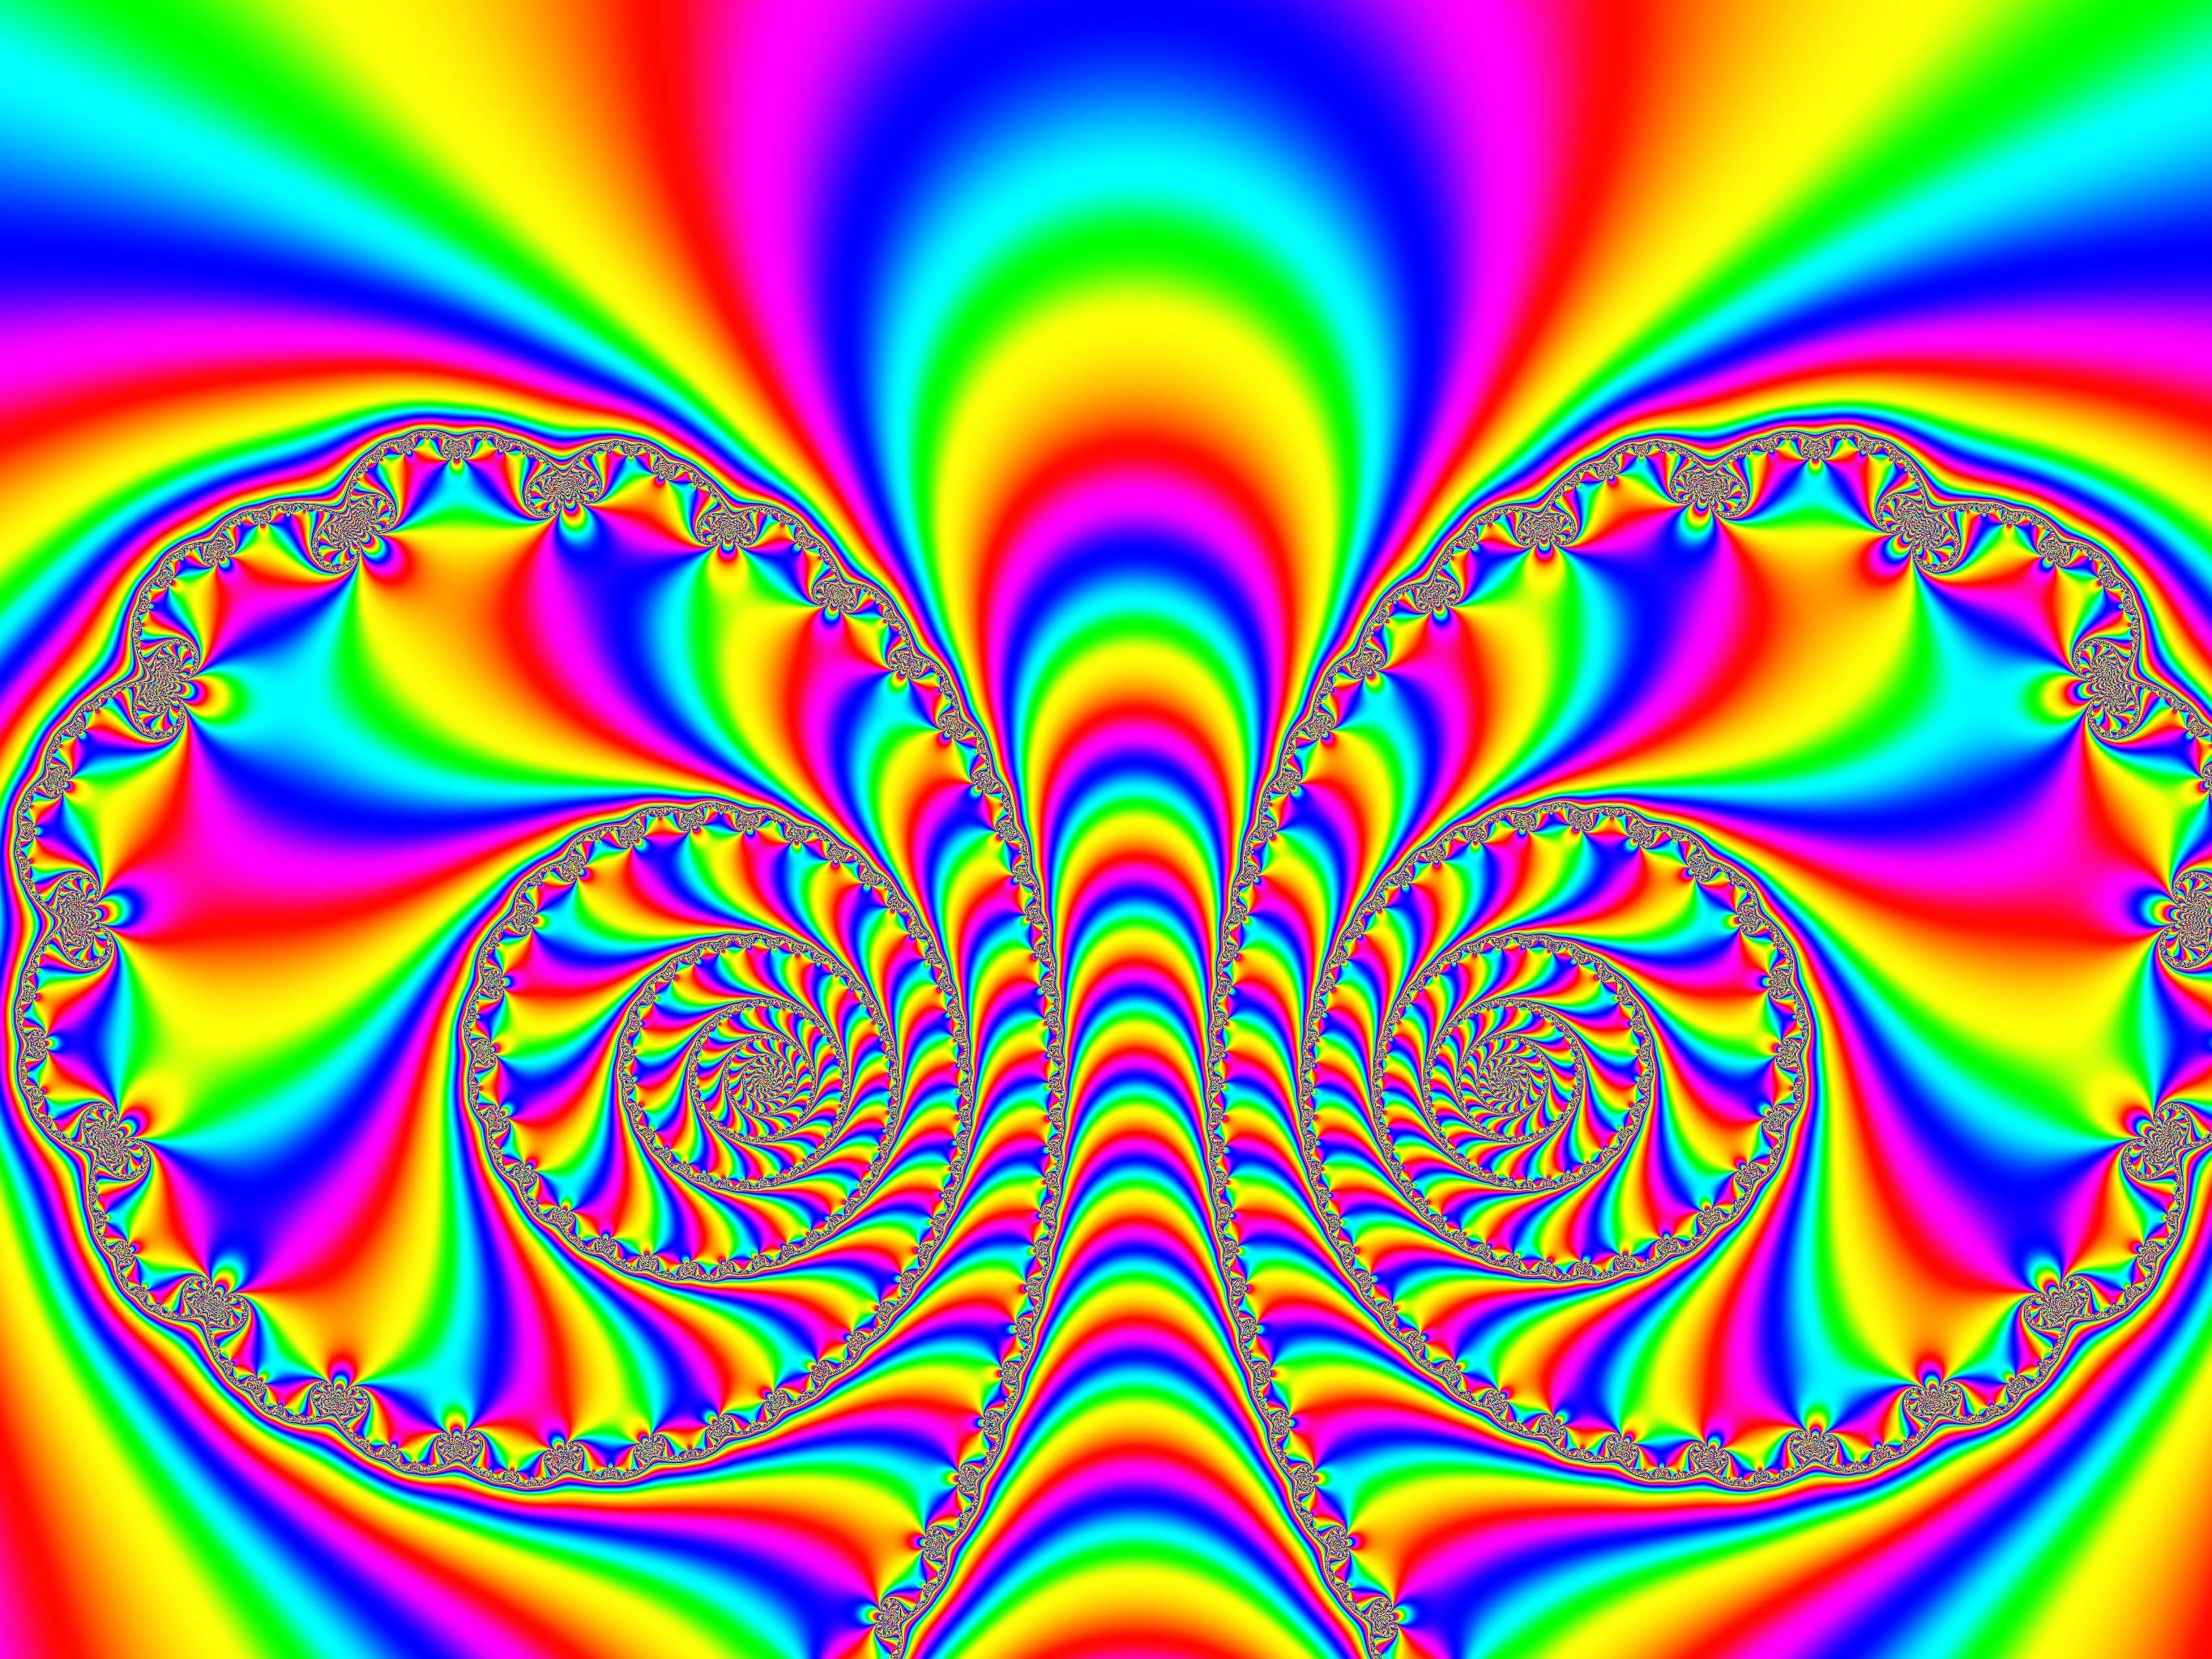 50 Trippy Background Wallpaper Psychedelic Wallpaper: Trippy Twitter Backgrounds (50+ Images